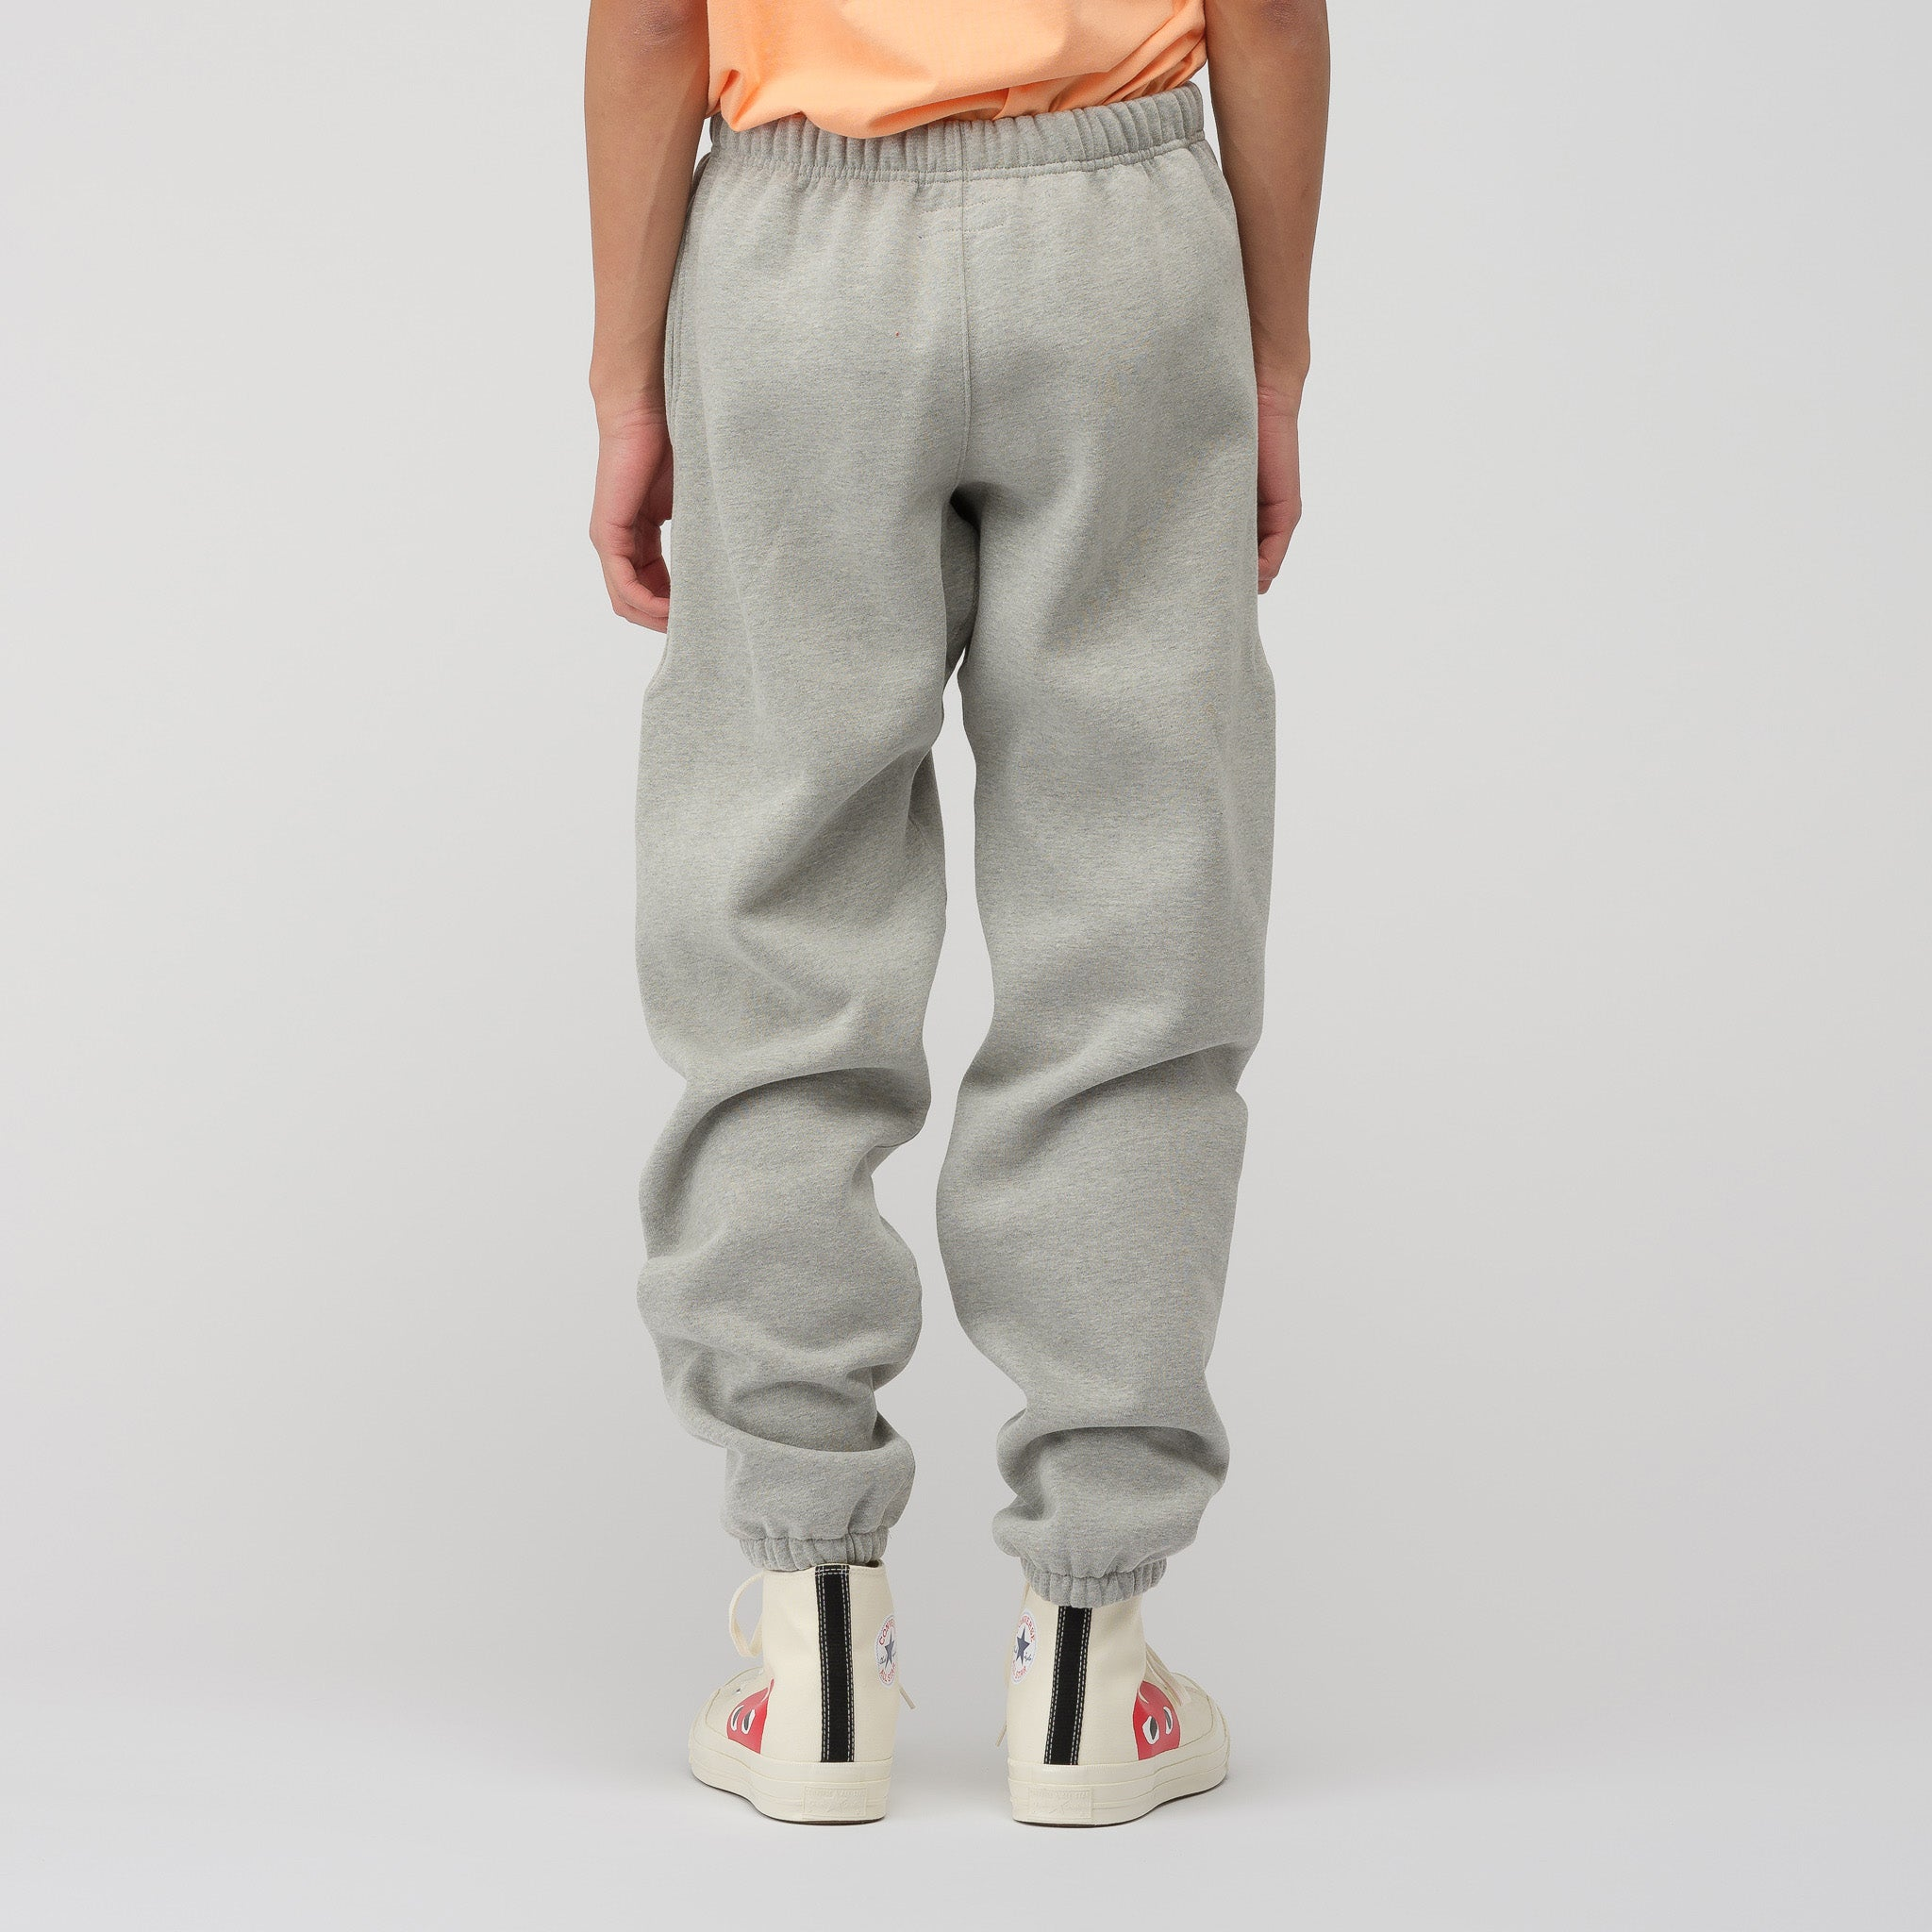 Up by Three Sweatpants in Heather Grey